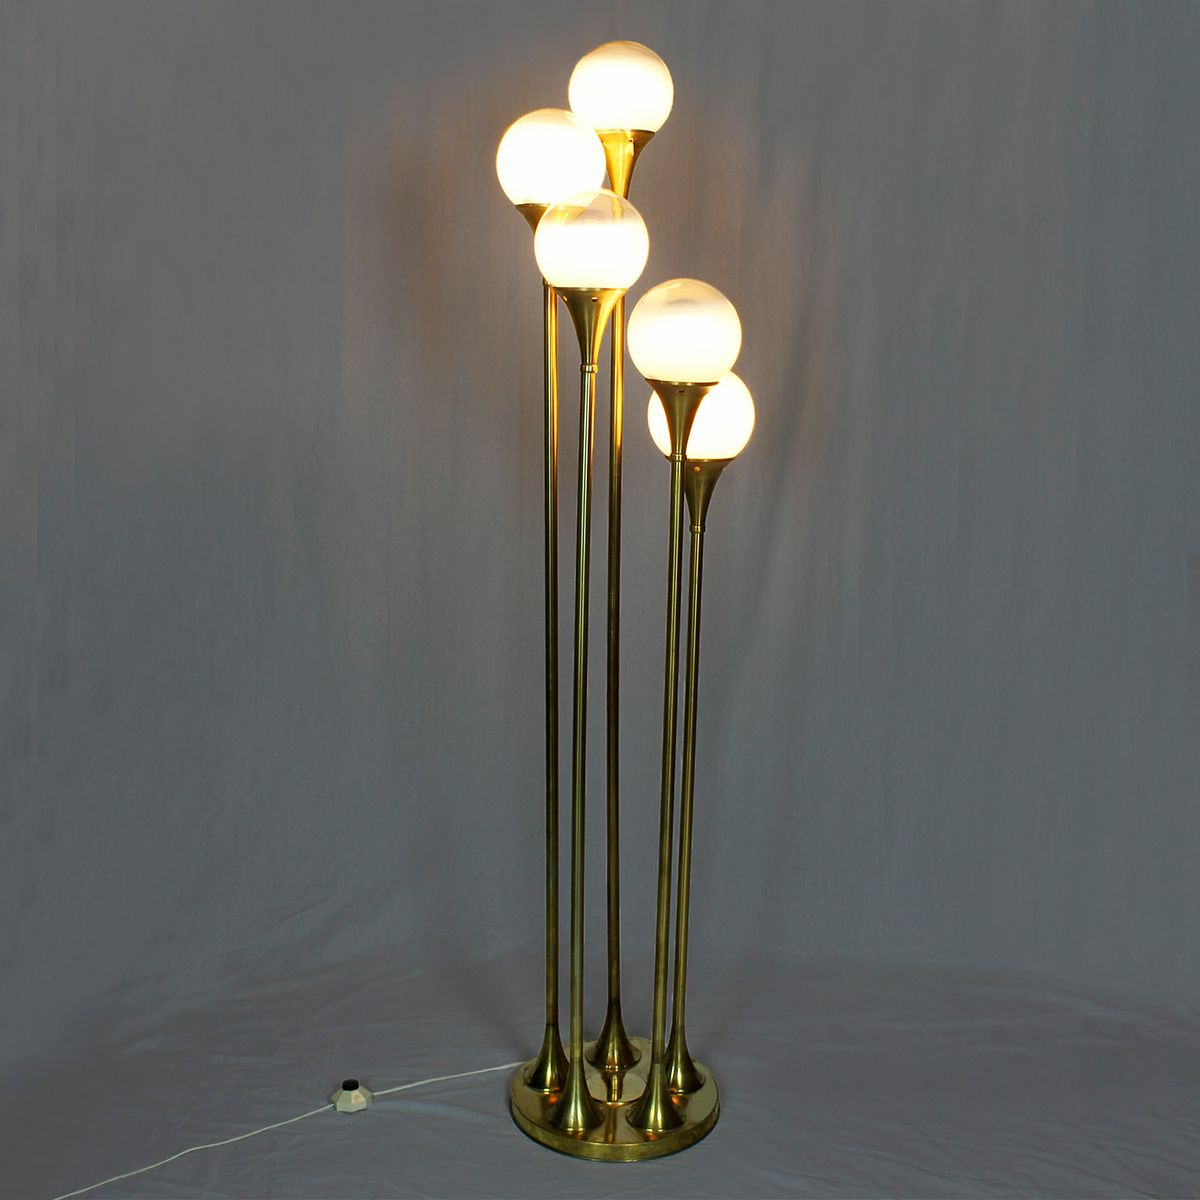 light floor lamp by goffredo reggiani 1960s for sale at pamono. Black Bedroom Furniture Sets. Home Design Ideas